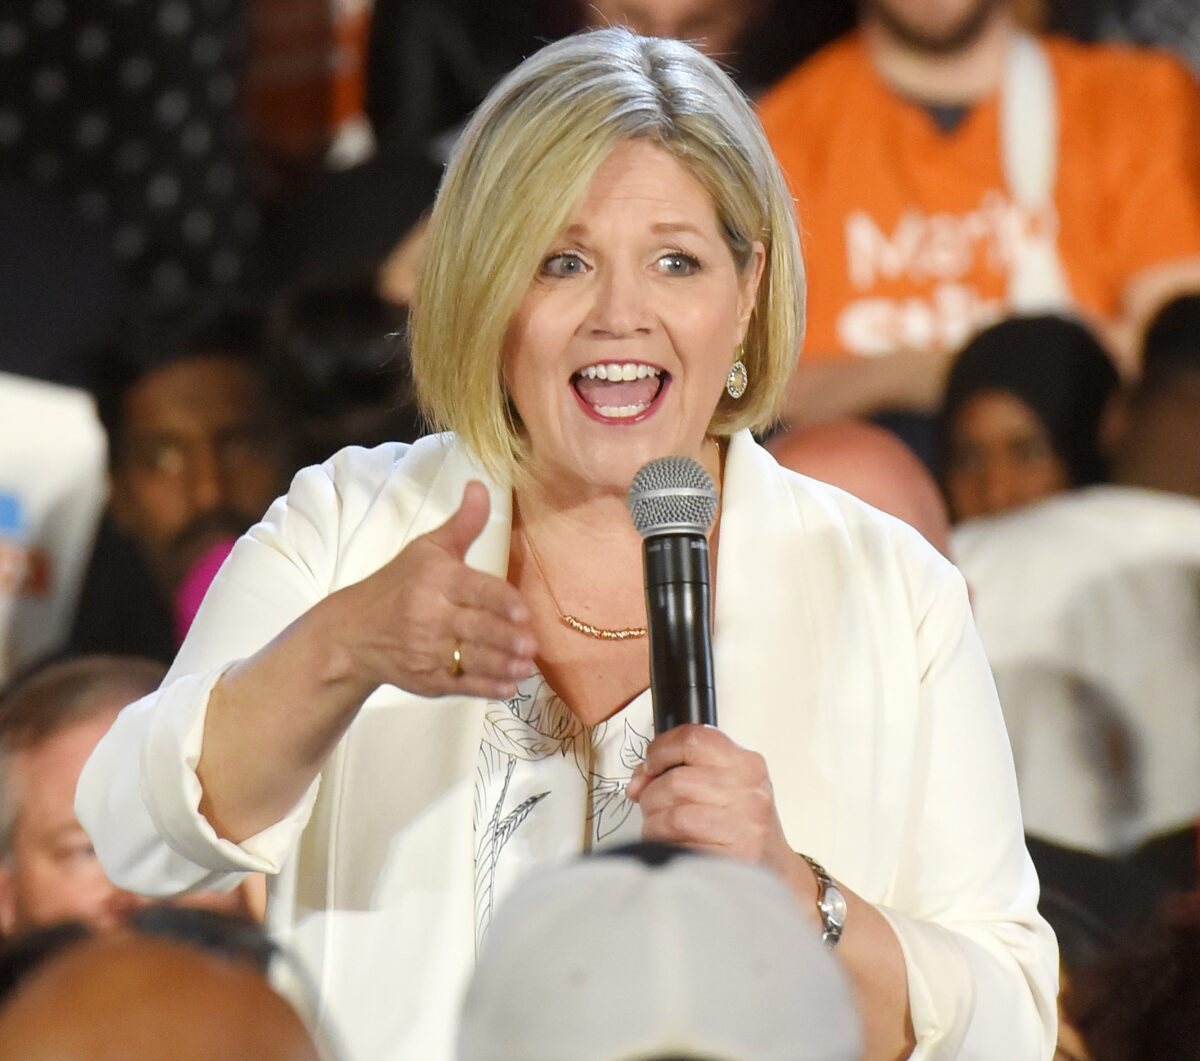 Ontario NDP lays out environment plan to revive cap-and-trade, laying groundwork for 2022 campaign